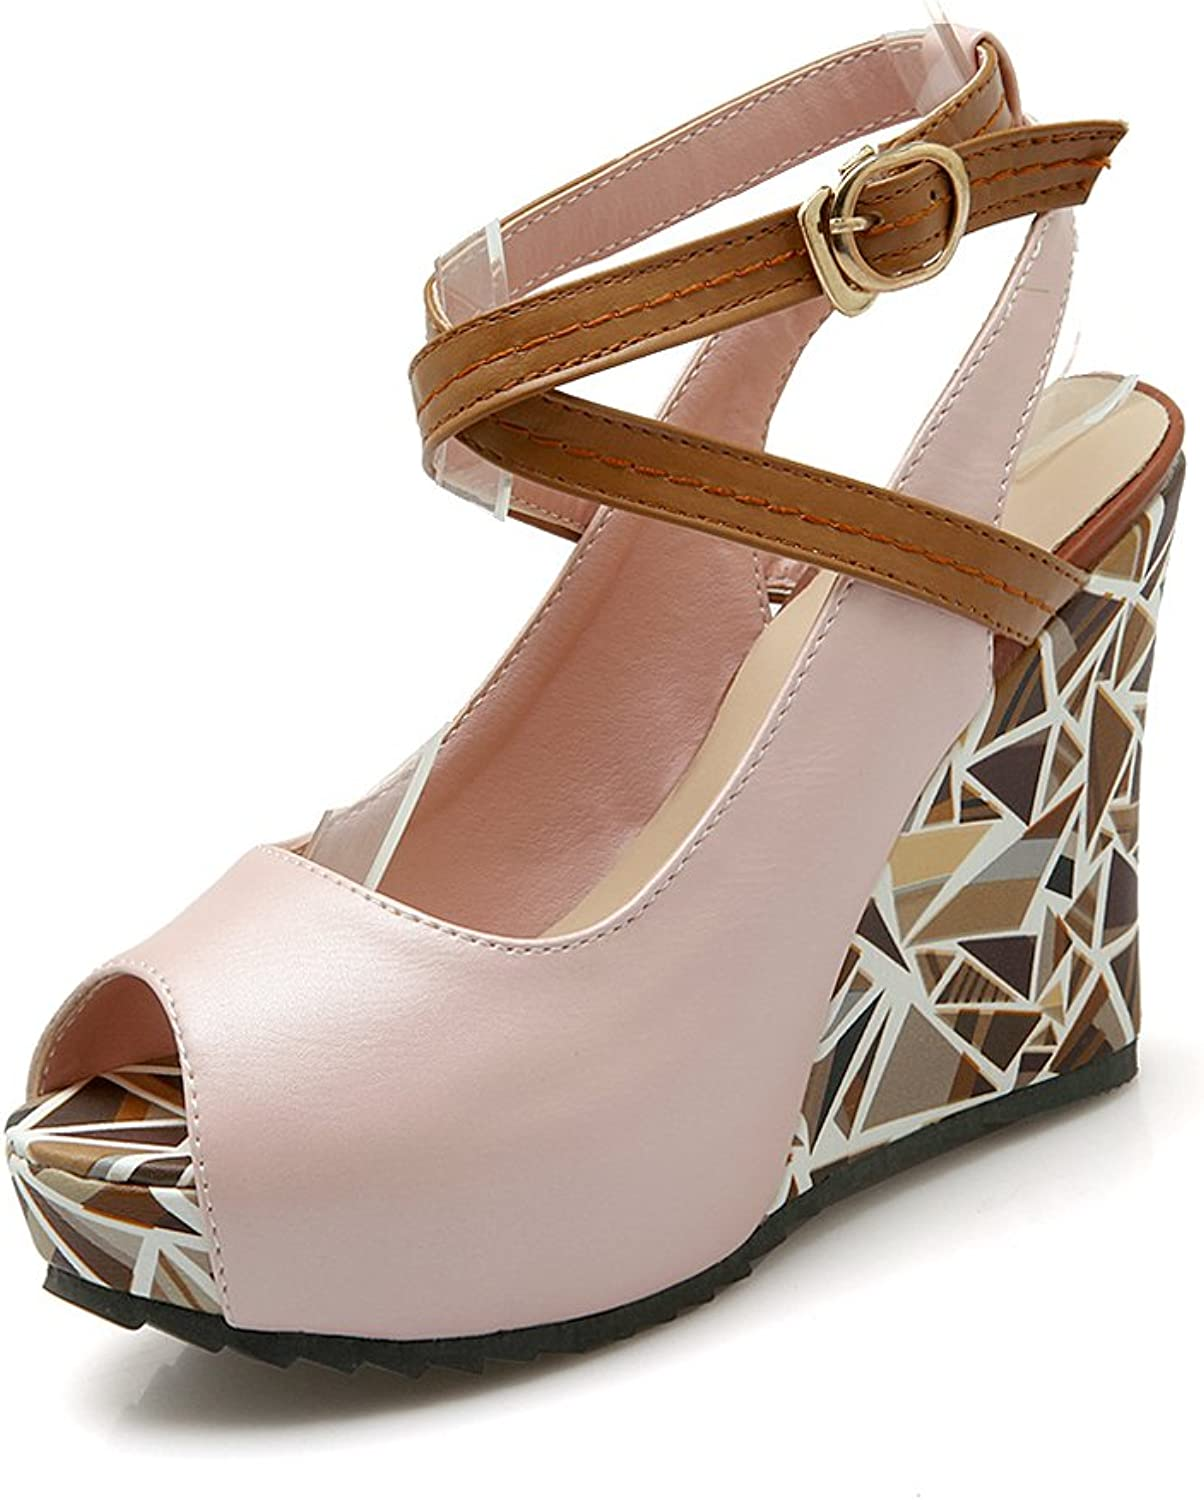 DoraTasia Sexy Peep Toe Mixed color Ankle Wrap Buckle up Geometric Pattern Pumps shoes